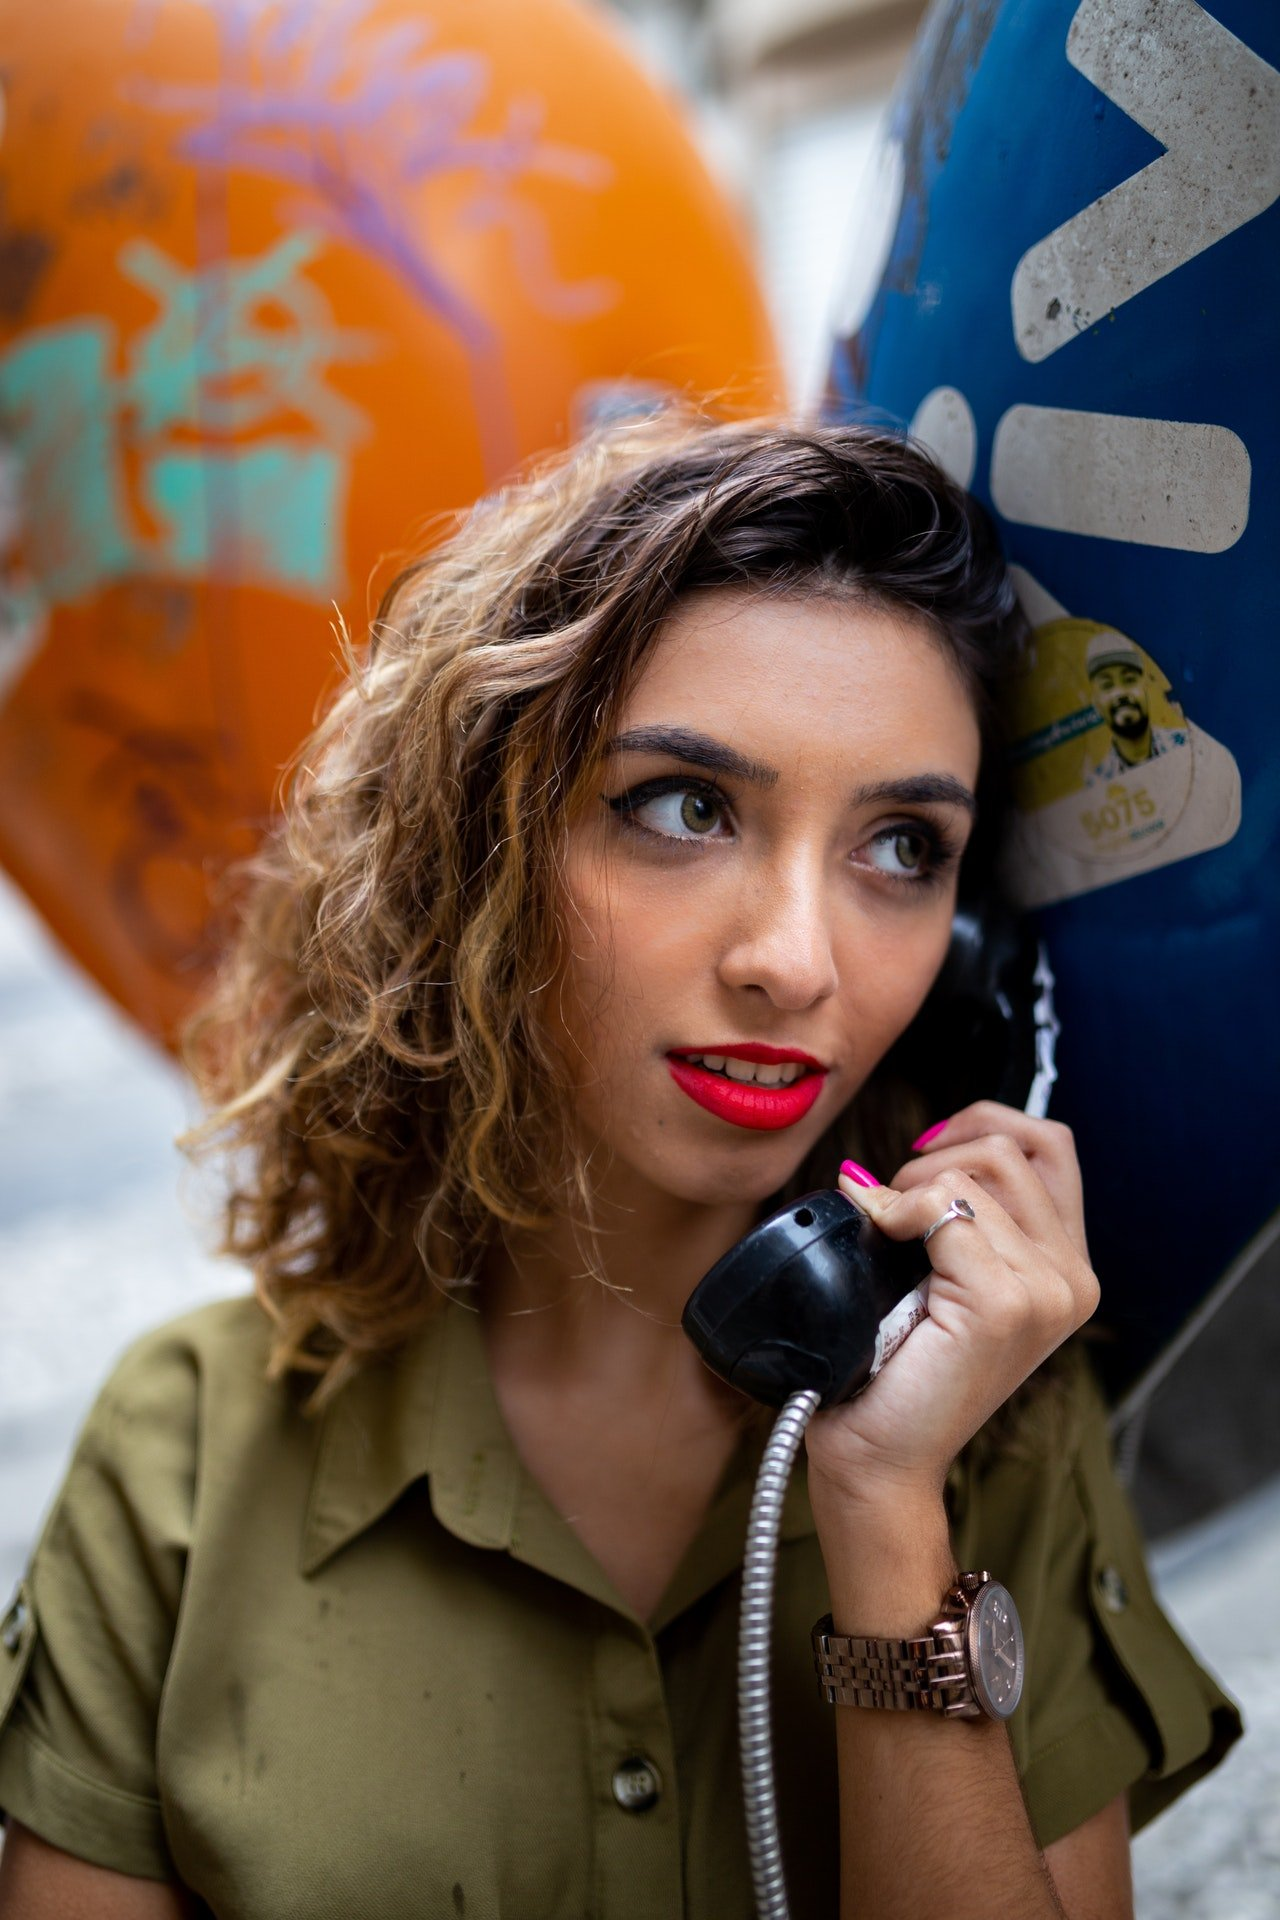 Photo of a woman holding a telephone   Photo: Pexels